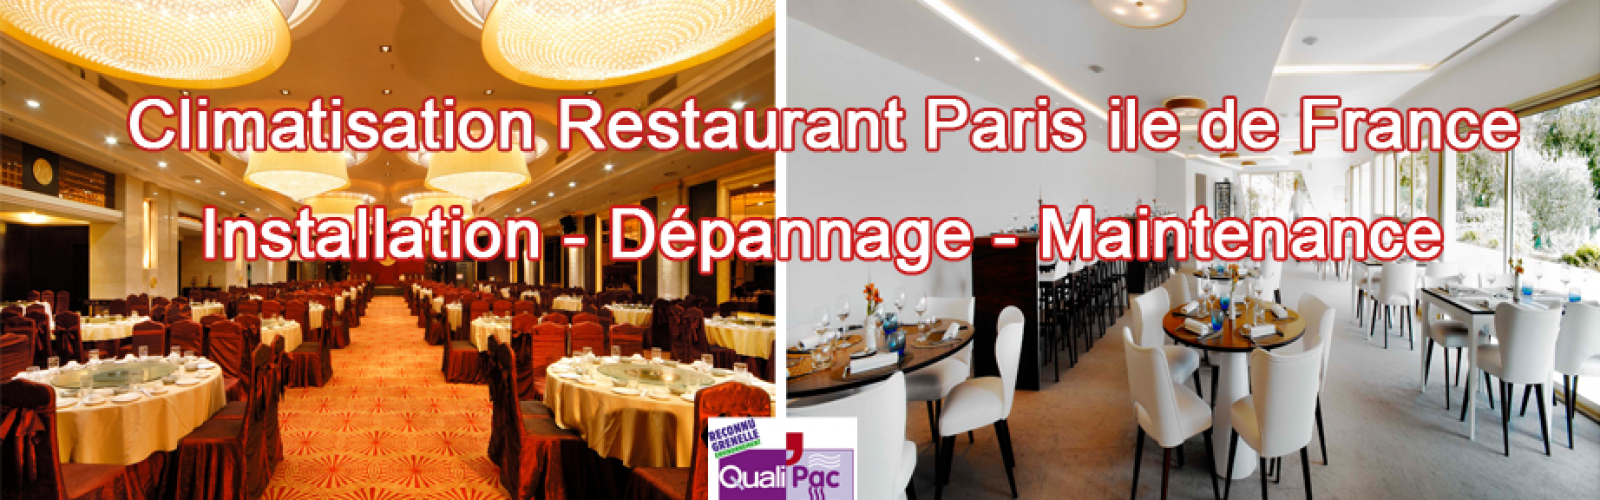 installation depannage maintenance climatisation restaurant